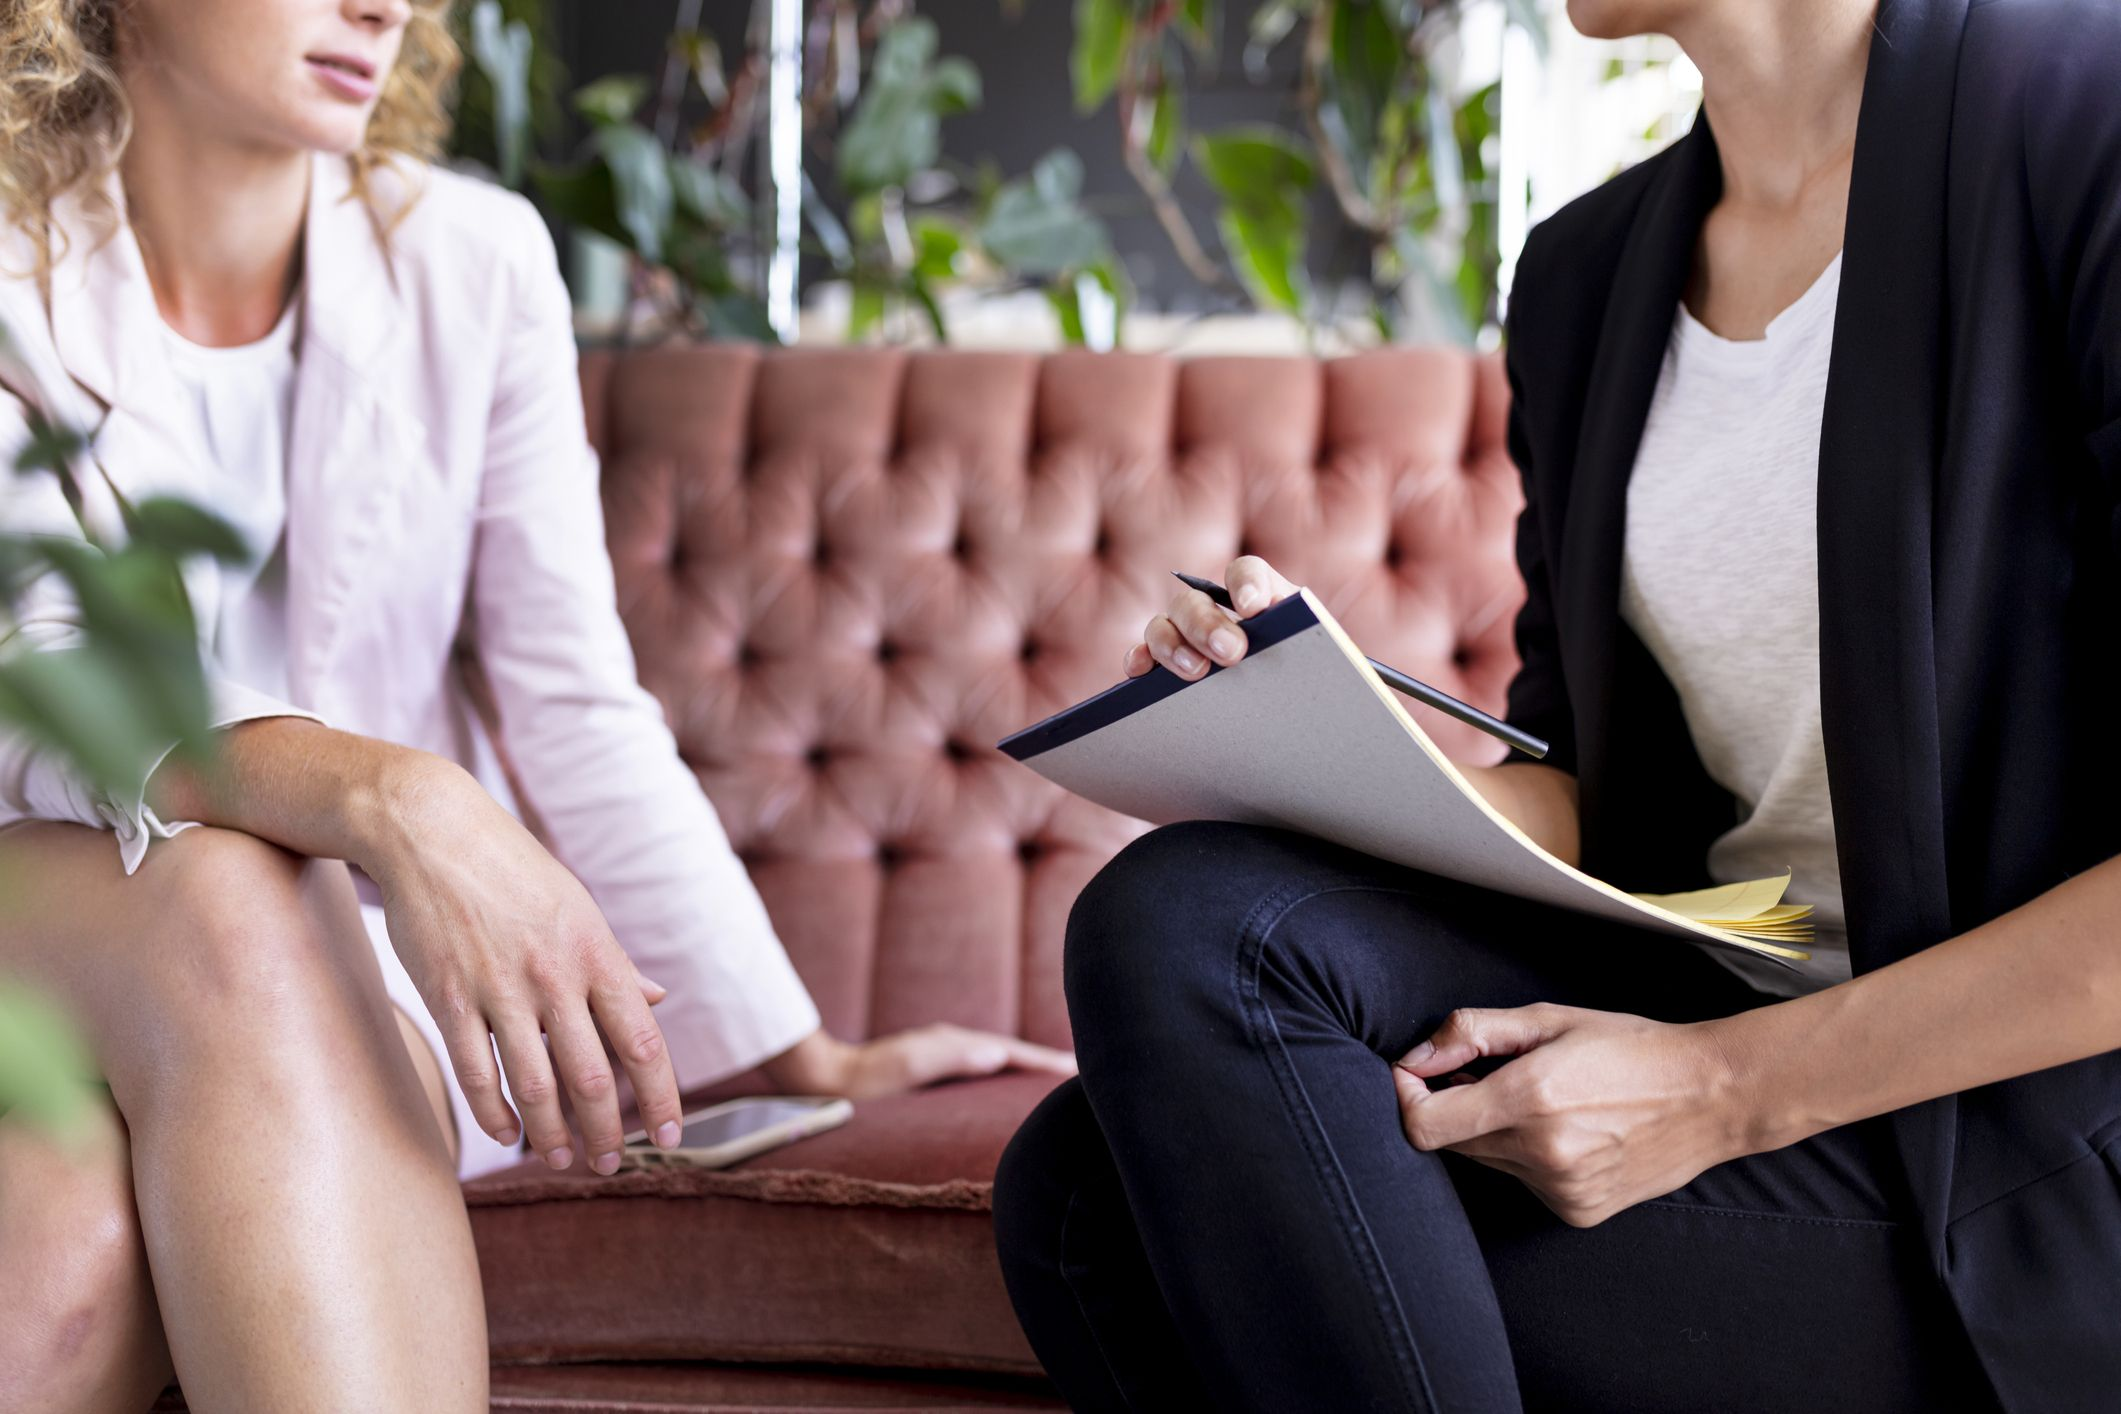 Signs you should see a therapist (and how to find one)